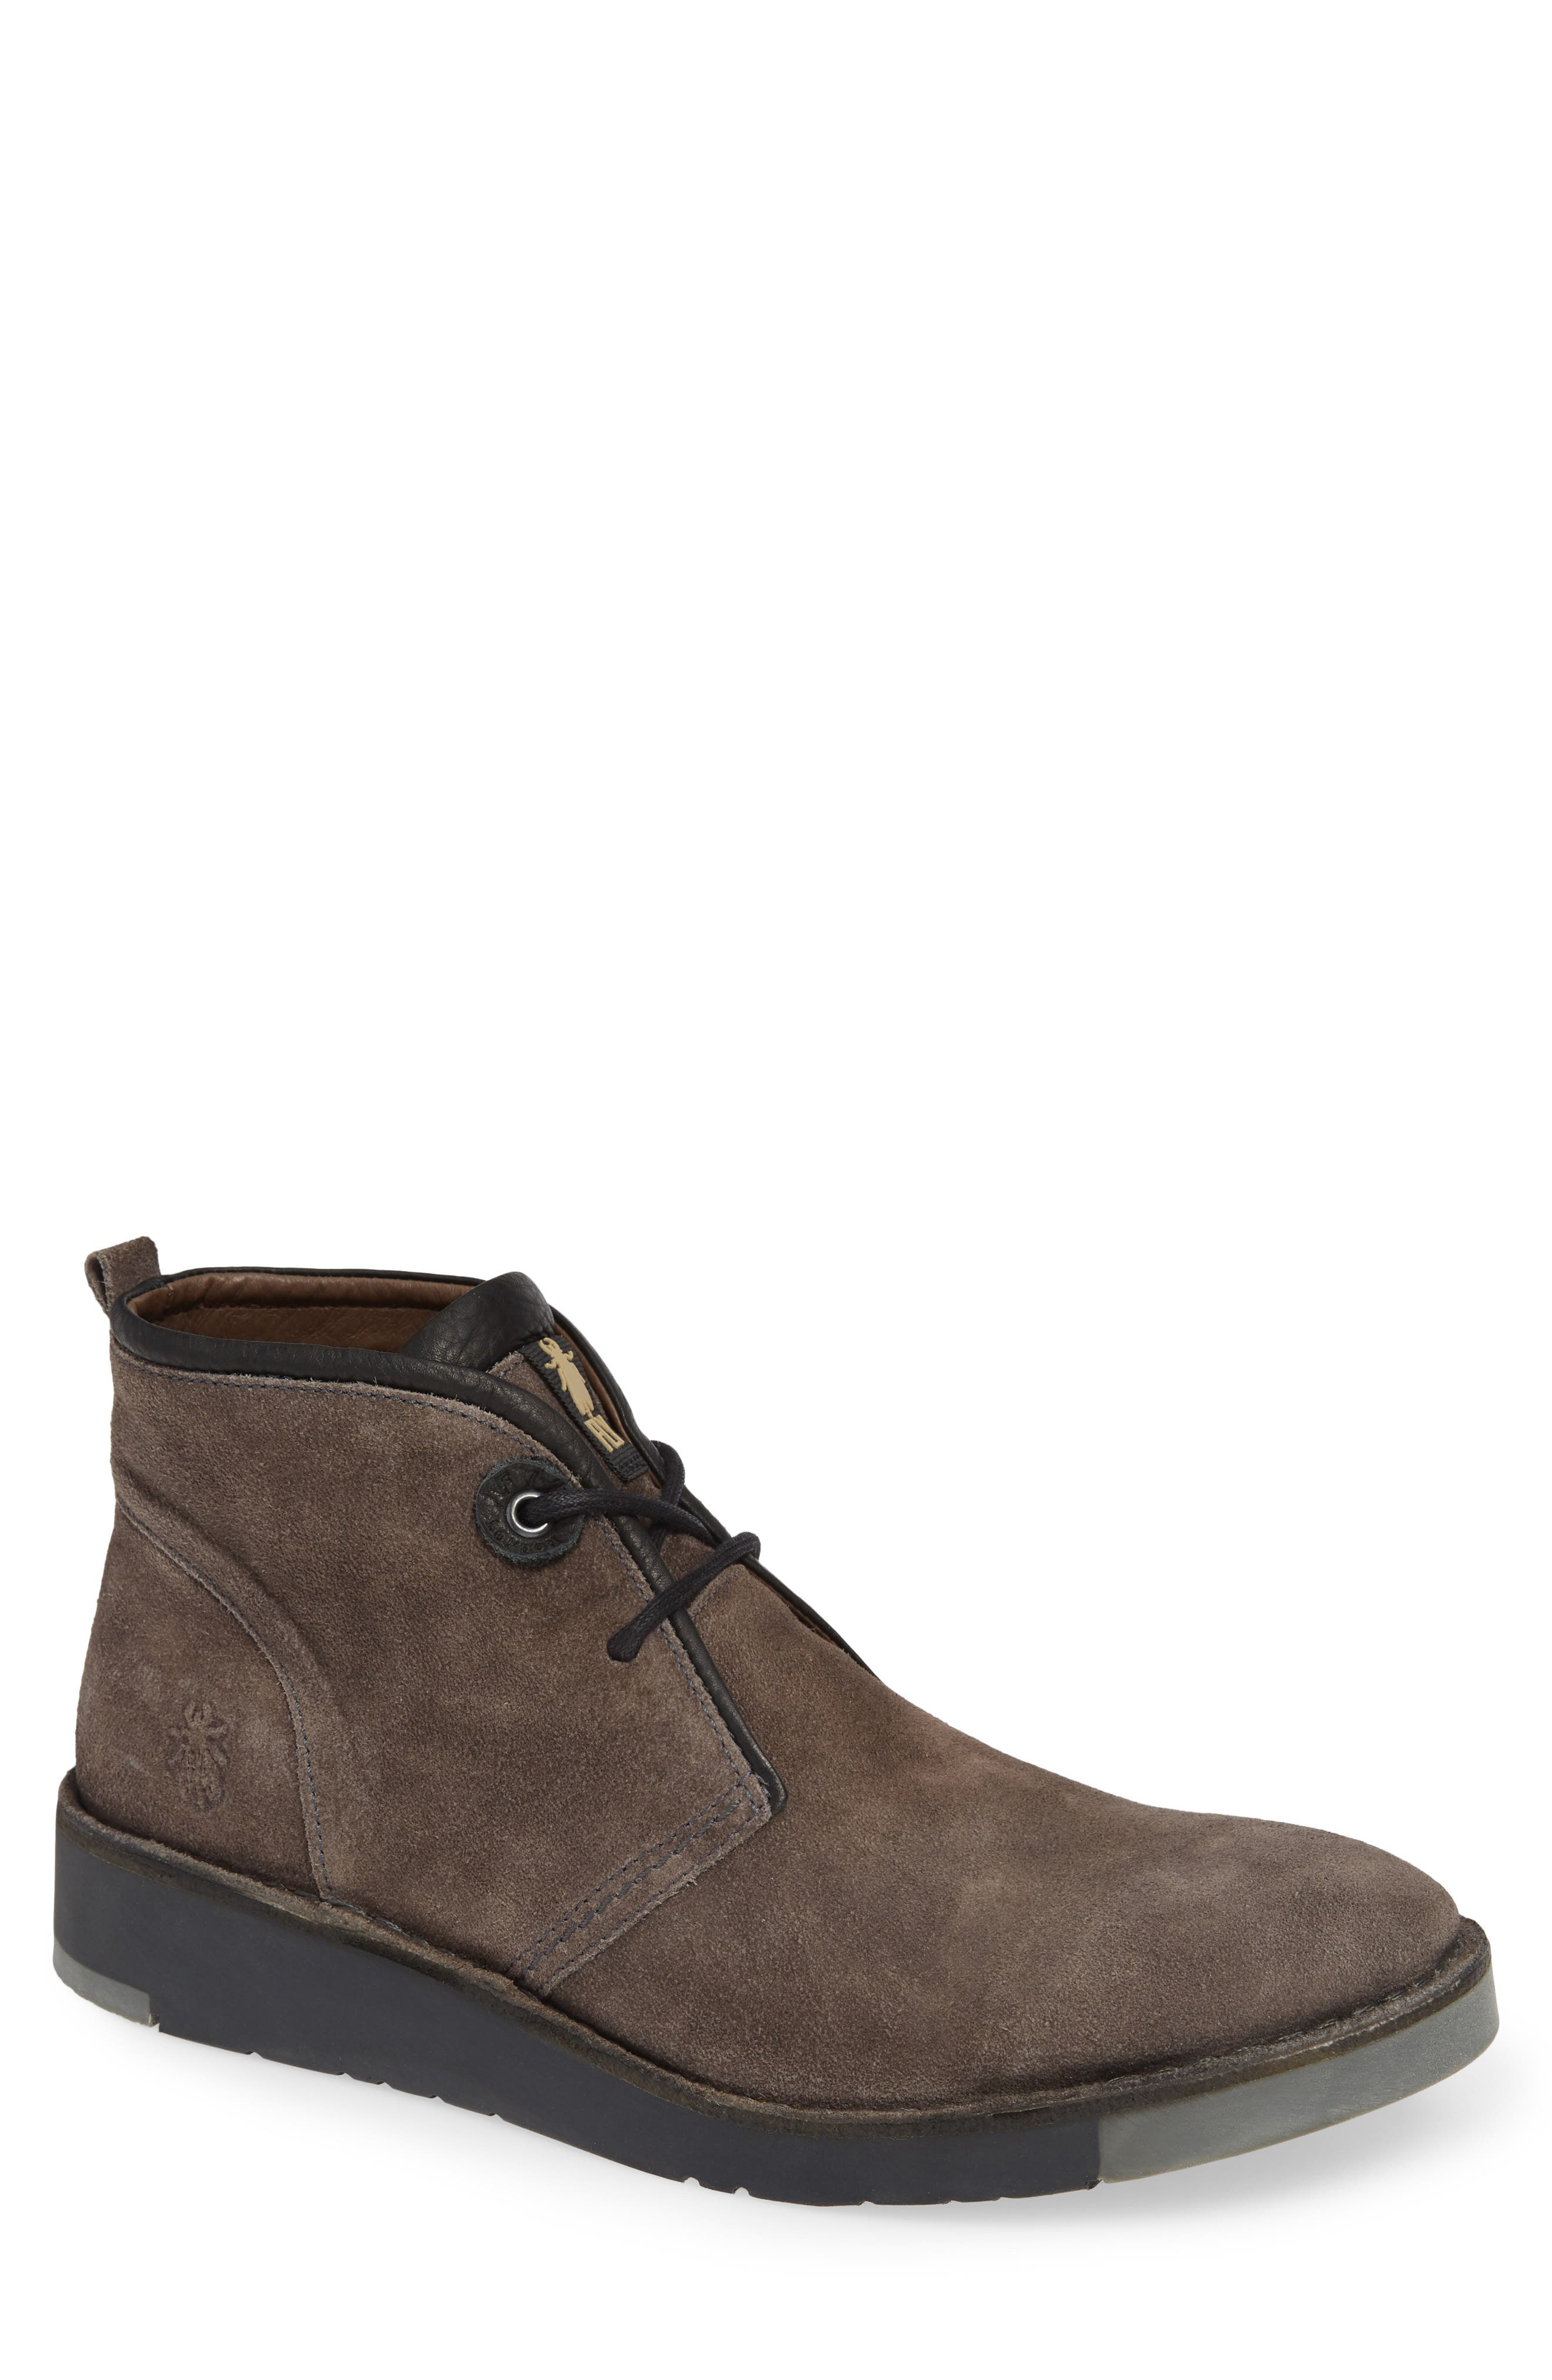 Fly London Sion Water Resistant Chukka Boot, Grey